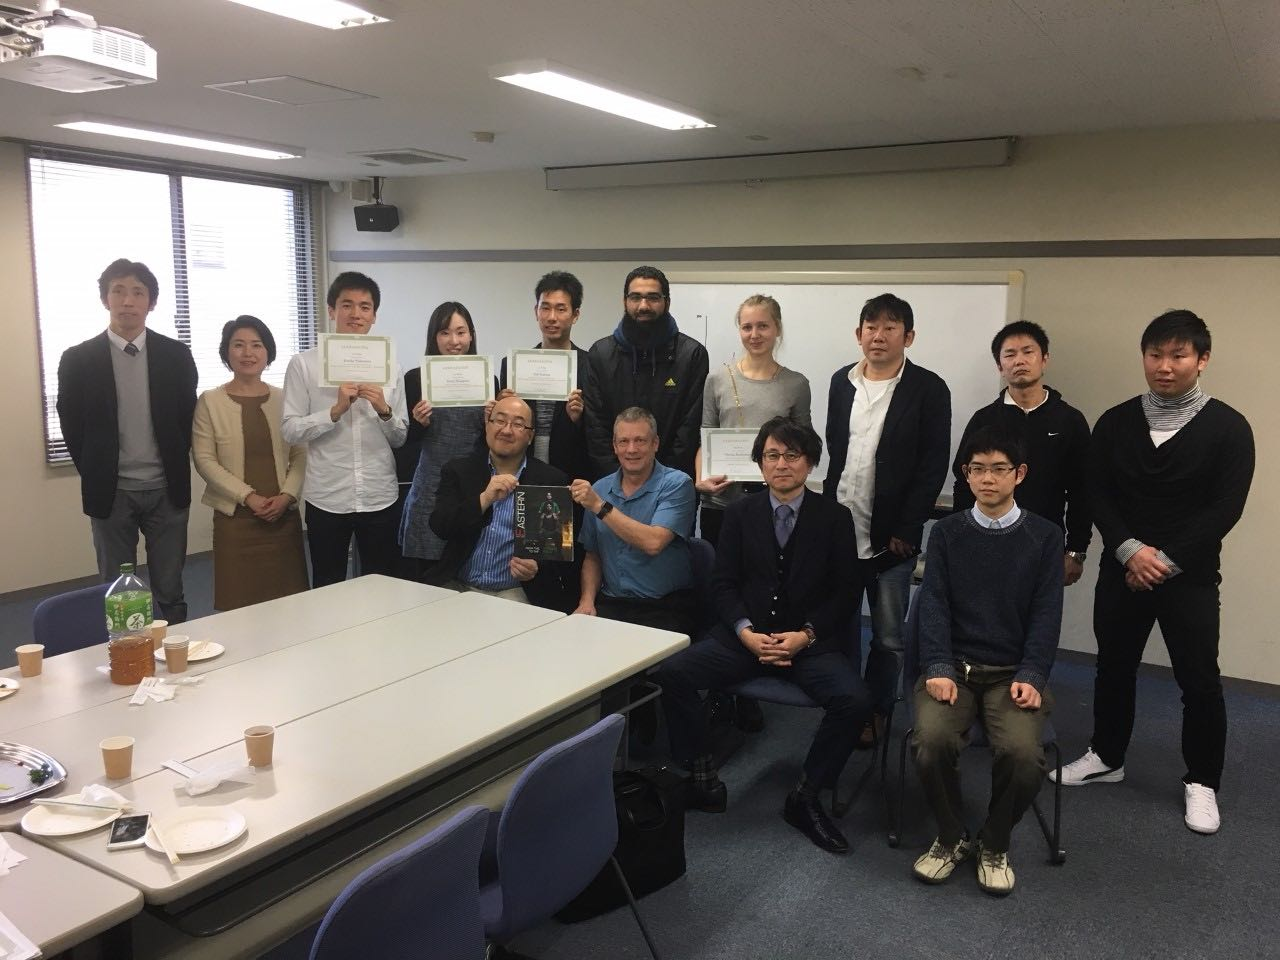 Atsushi Inoue and Dave Gorton with their class at Mie University. The students are participating in Eagle's Nest Business Pitch Competition and placed first in the second qualifying round | Photo contributed by Dave Gorton